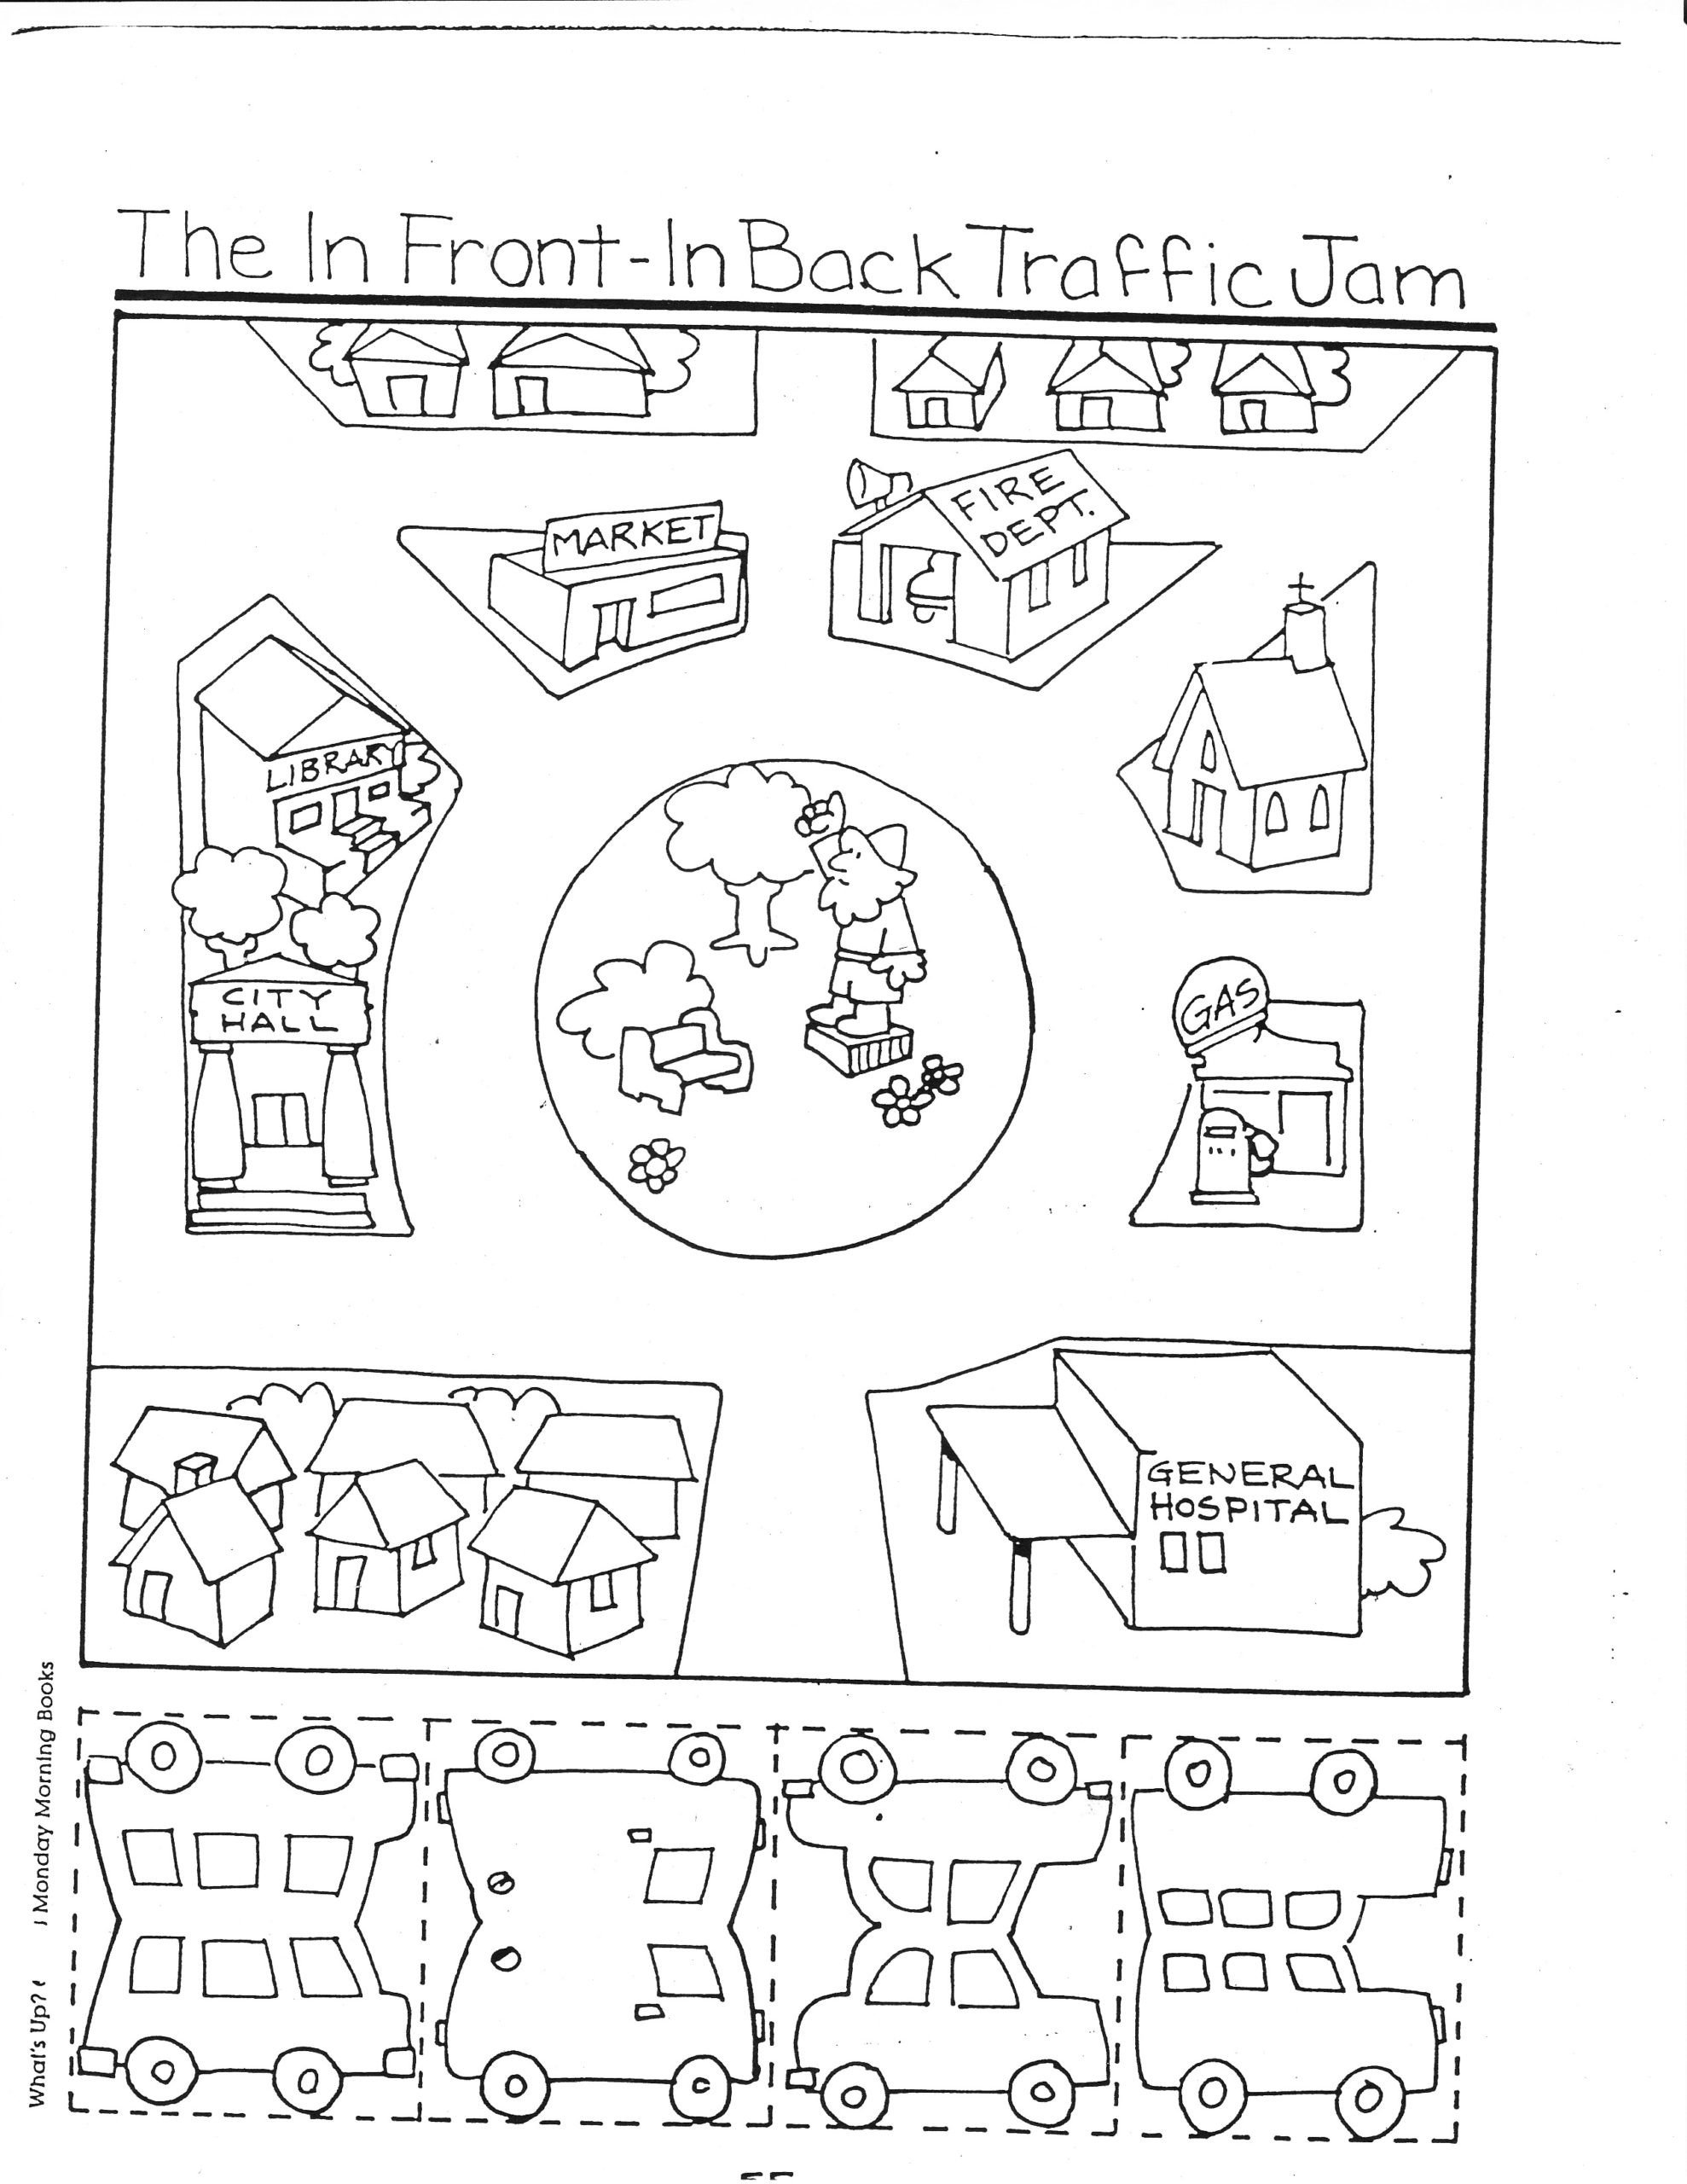 1st Grade Map Skills Worksheets social Skills Worksheet for Preschool Printable Worksheets